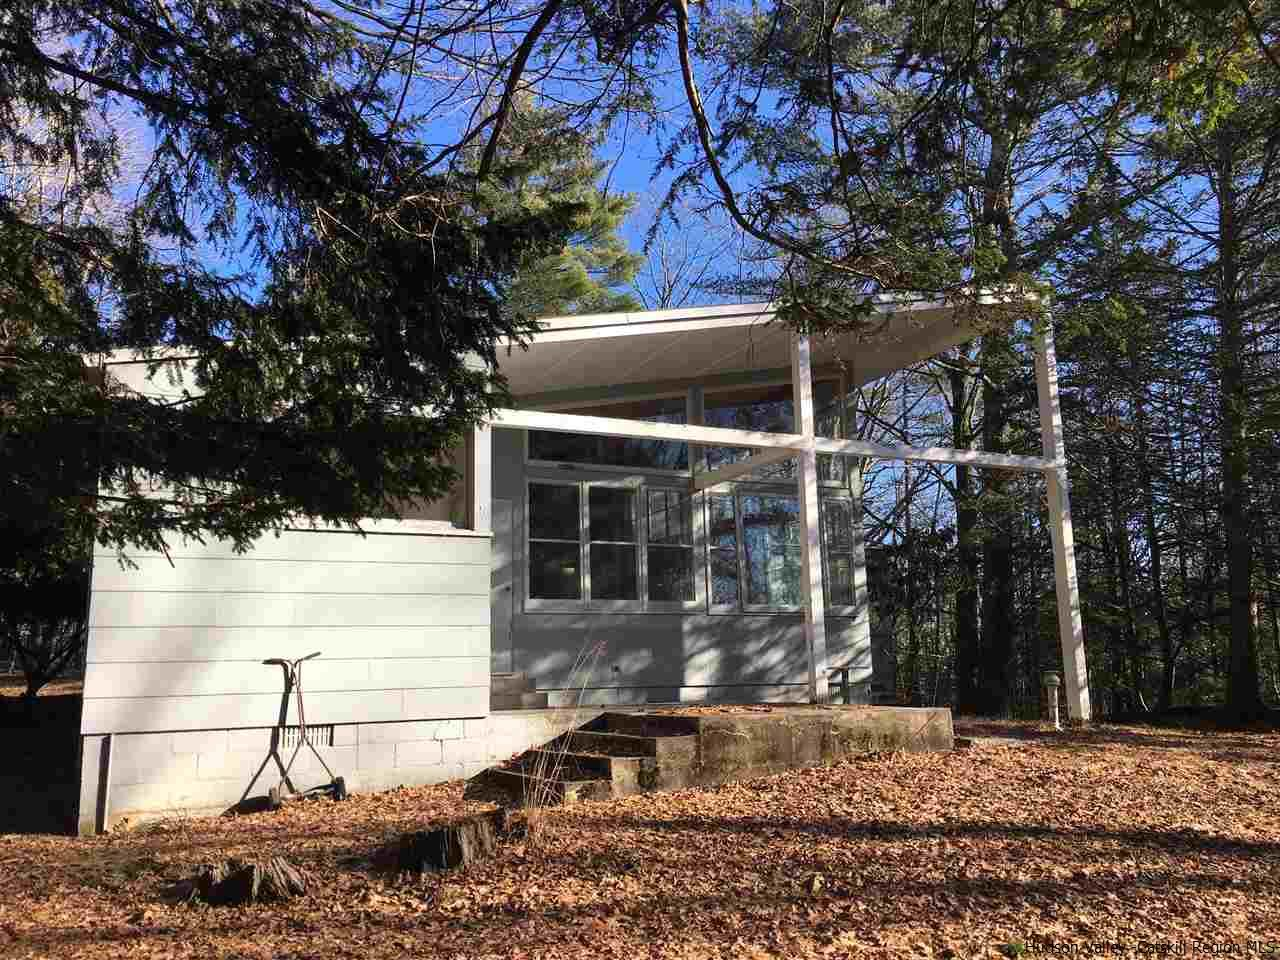 Additional photo for property listing at 262 UPPER BYRDCLIFF Road 262 UPPER BYRDCLIFF Road Woodstock, New York 12498 United States